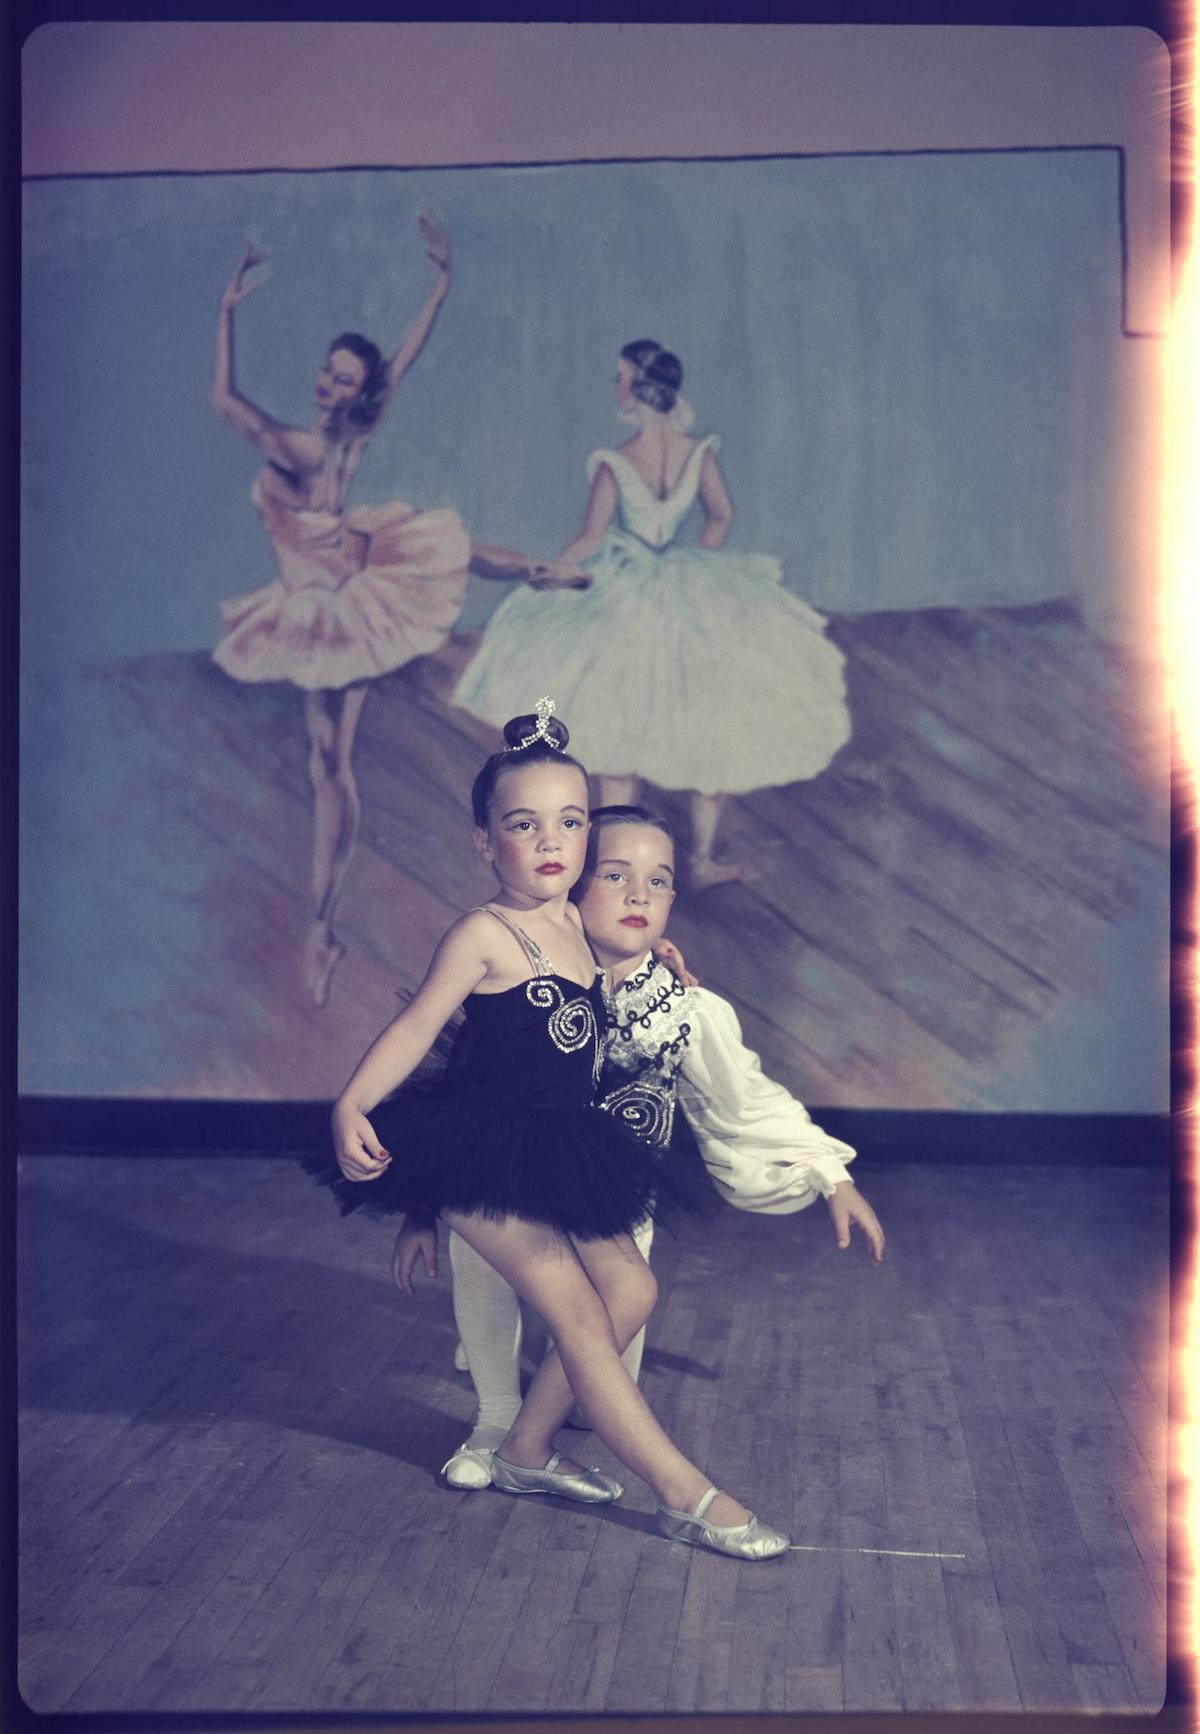 Williams, Byrd M. (Byrd Moore), III. [Young ballet dancers], photograph, 1947